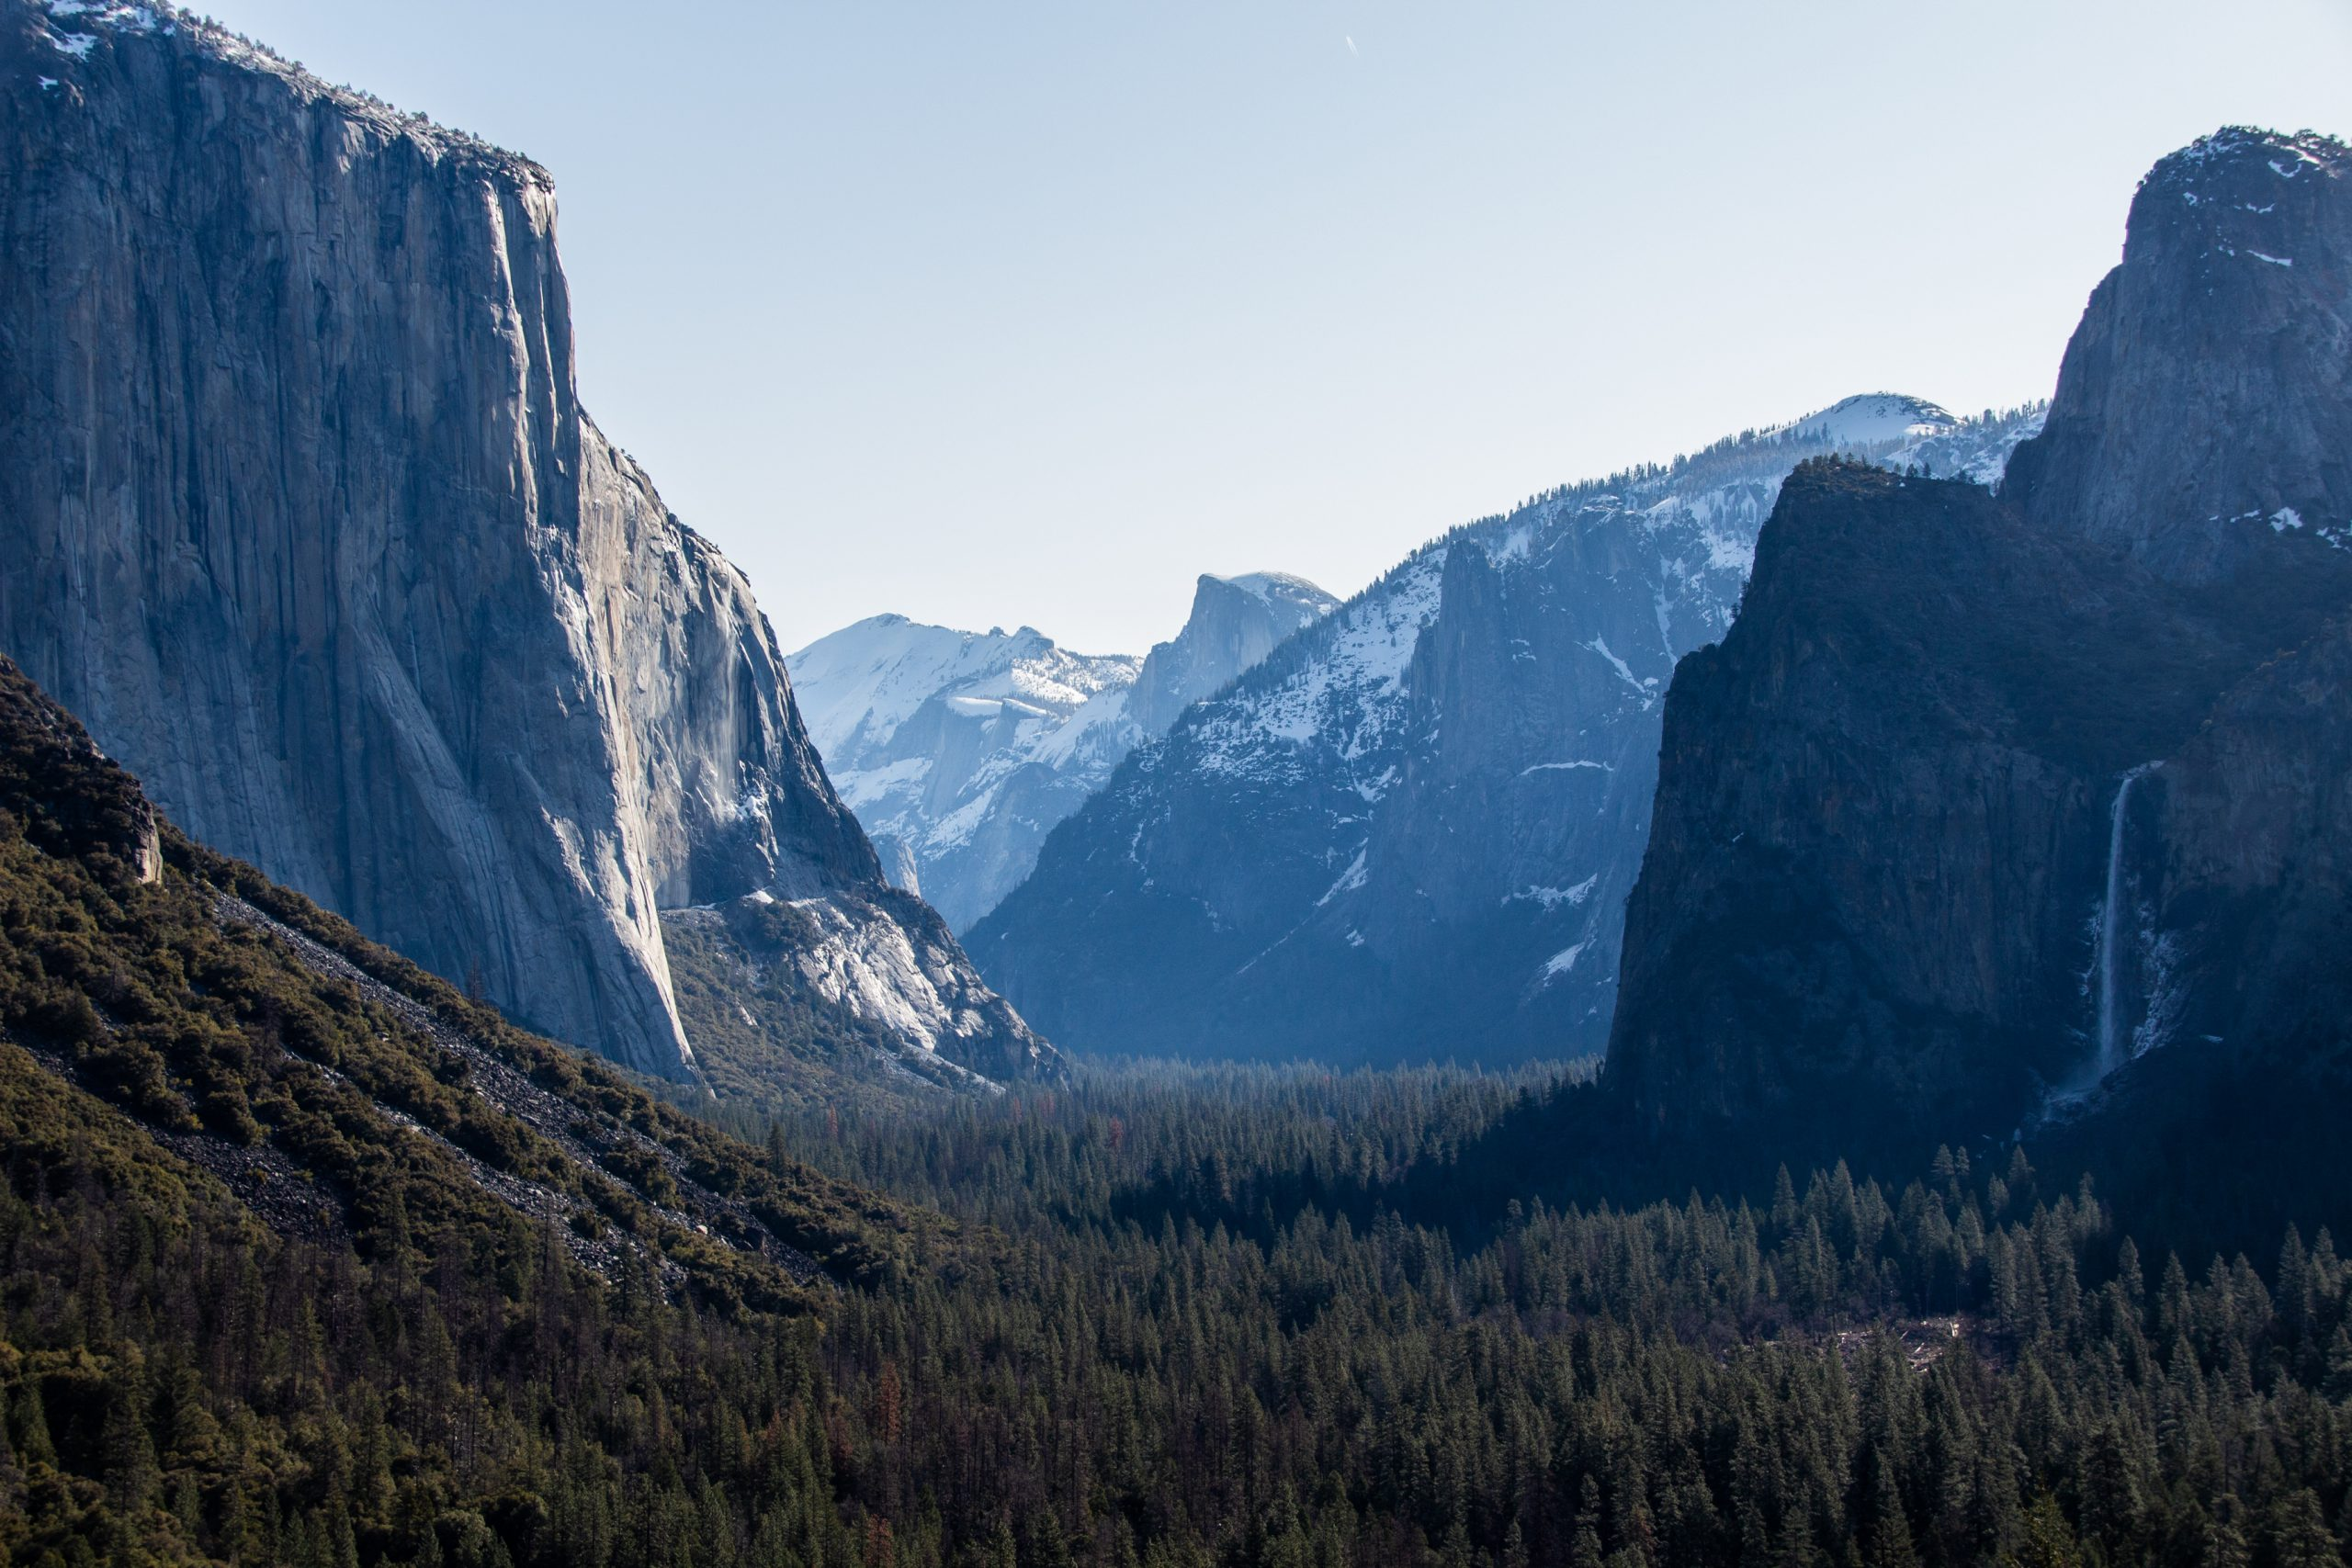 Massive Mountains Near Forest In Yosemite Park